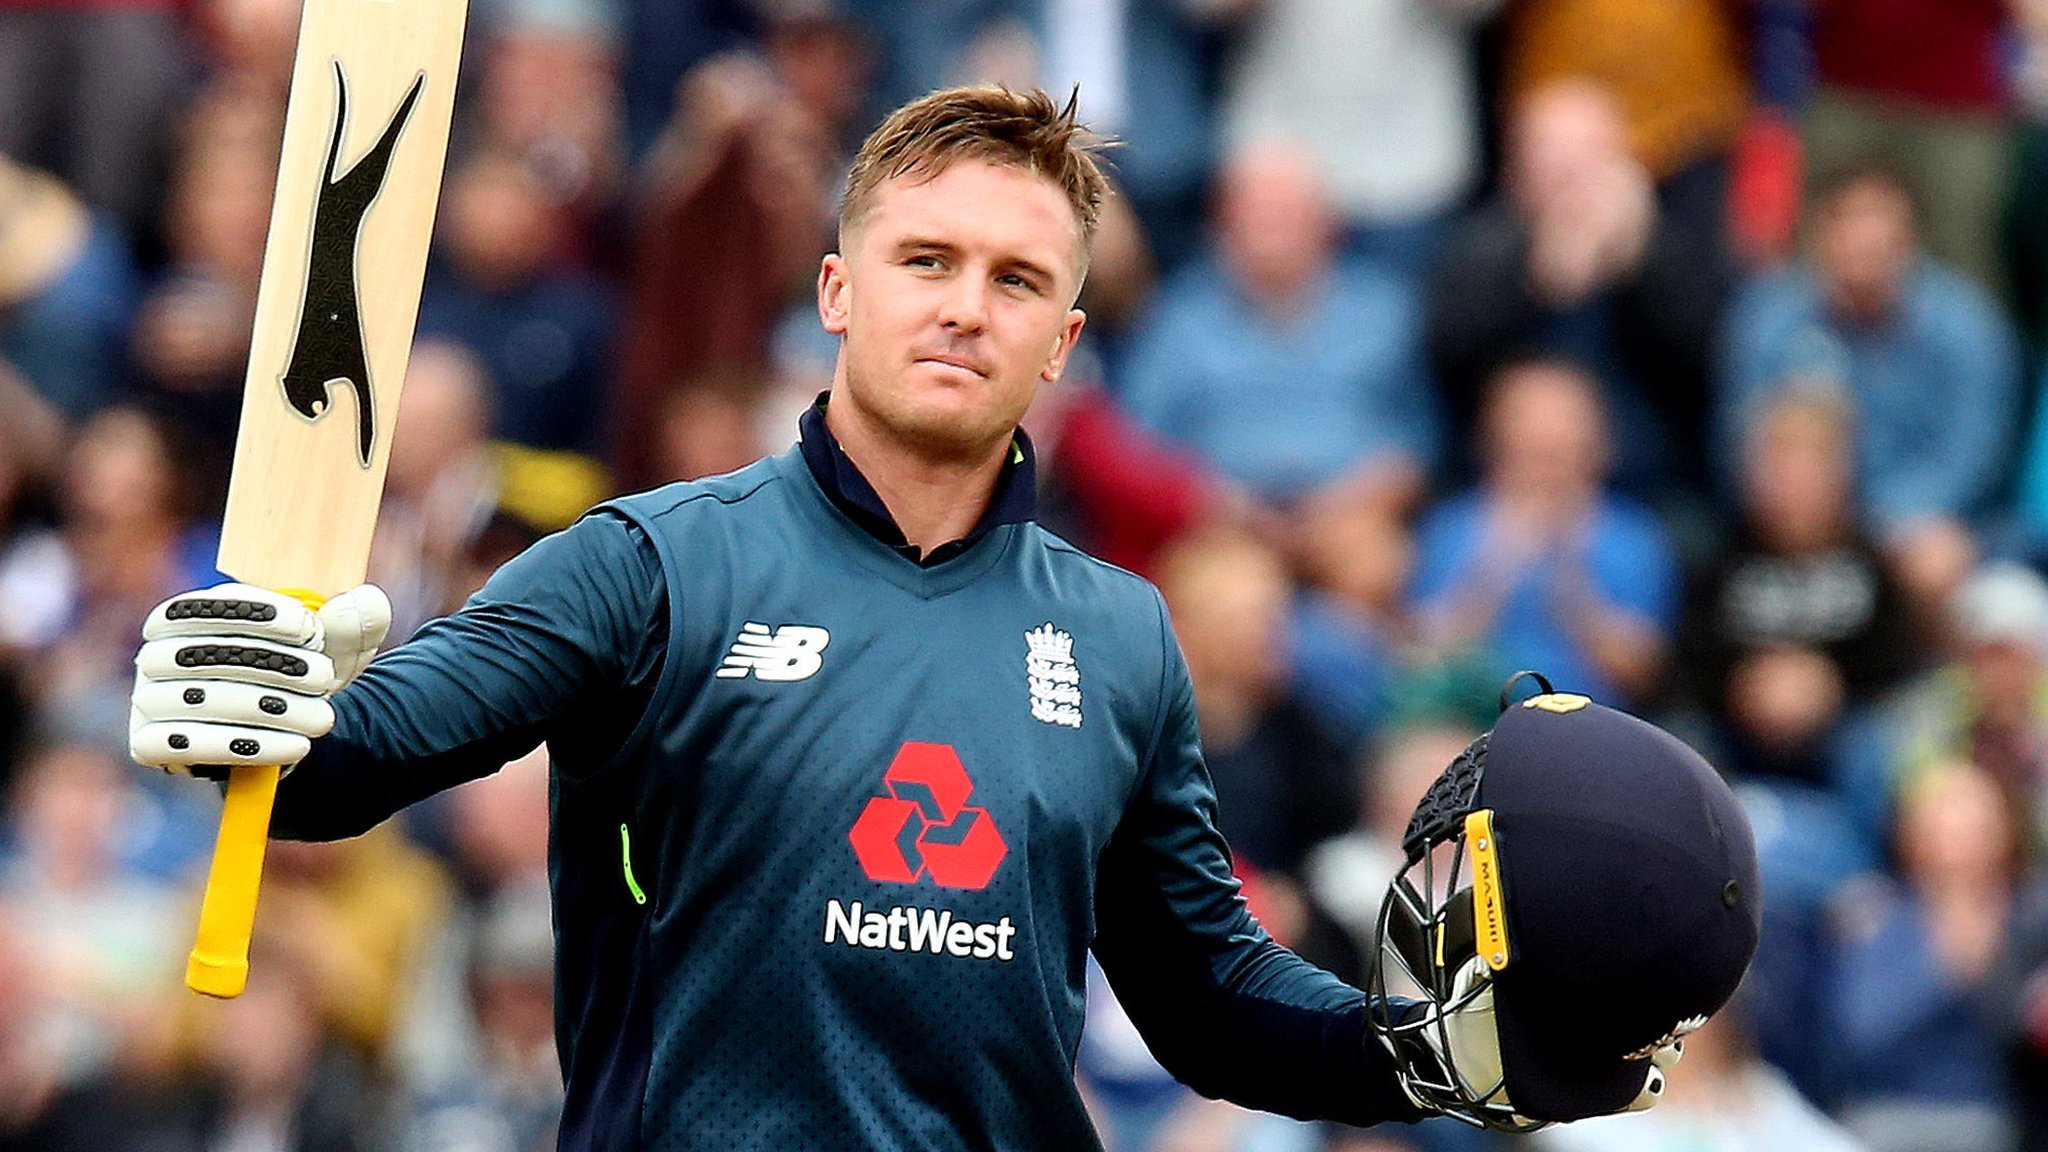 ENG v AUS 2018: Jason Roy sets his sights on helping England win their first ever World Cup next year